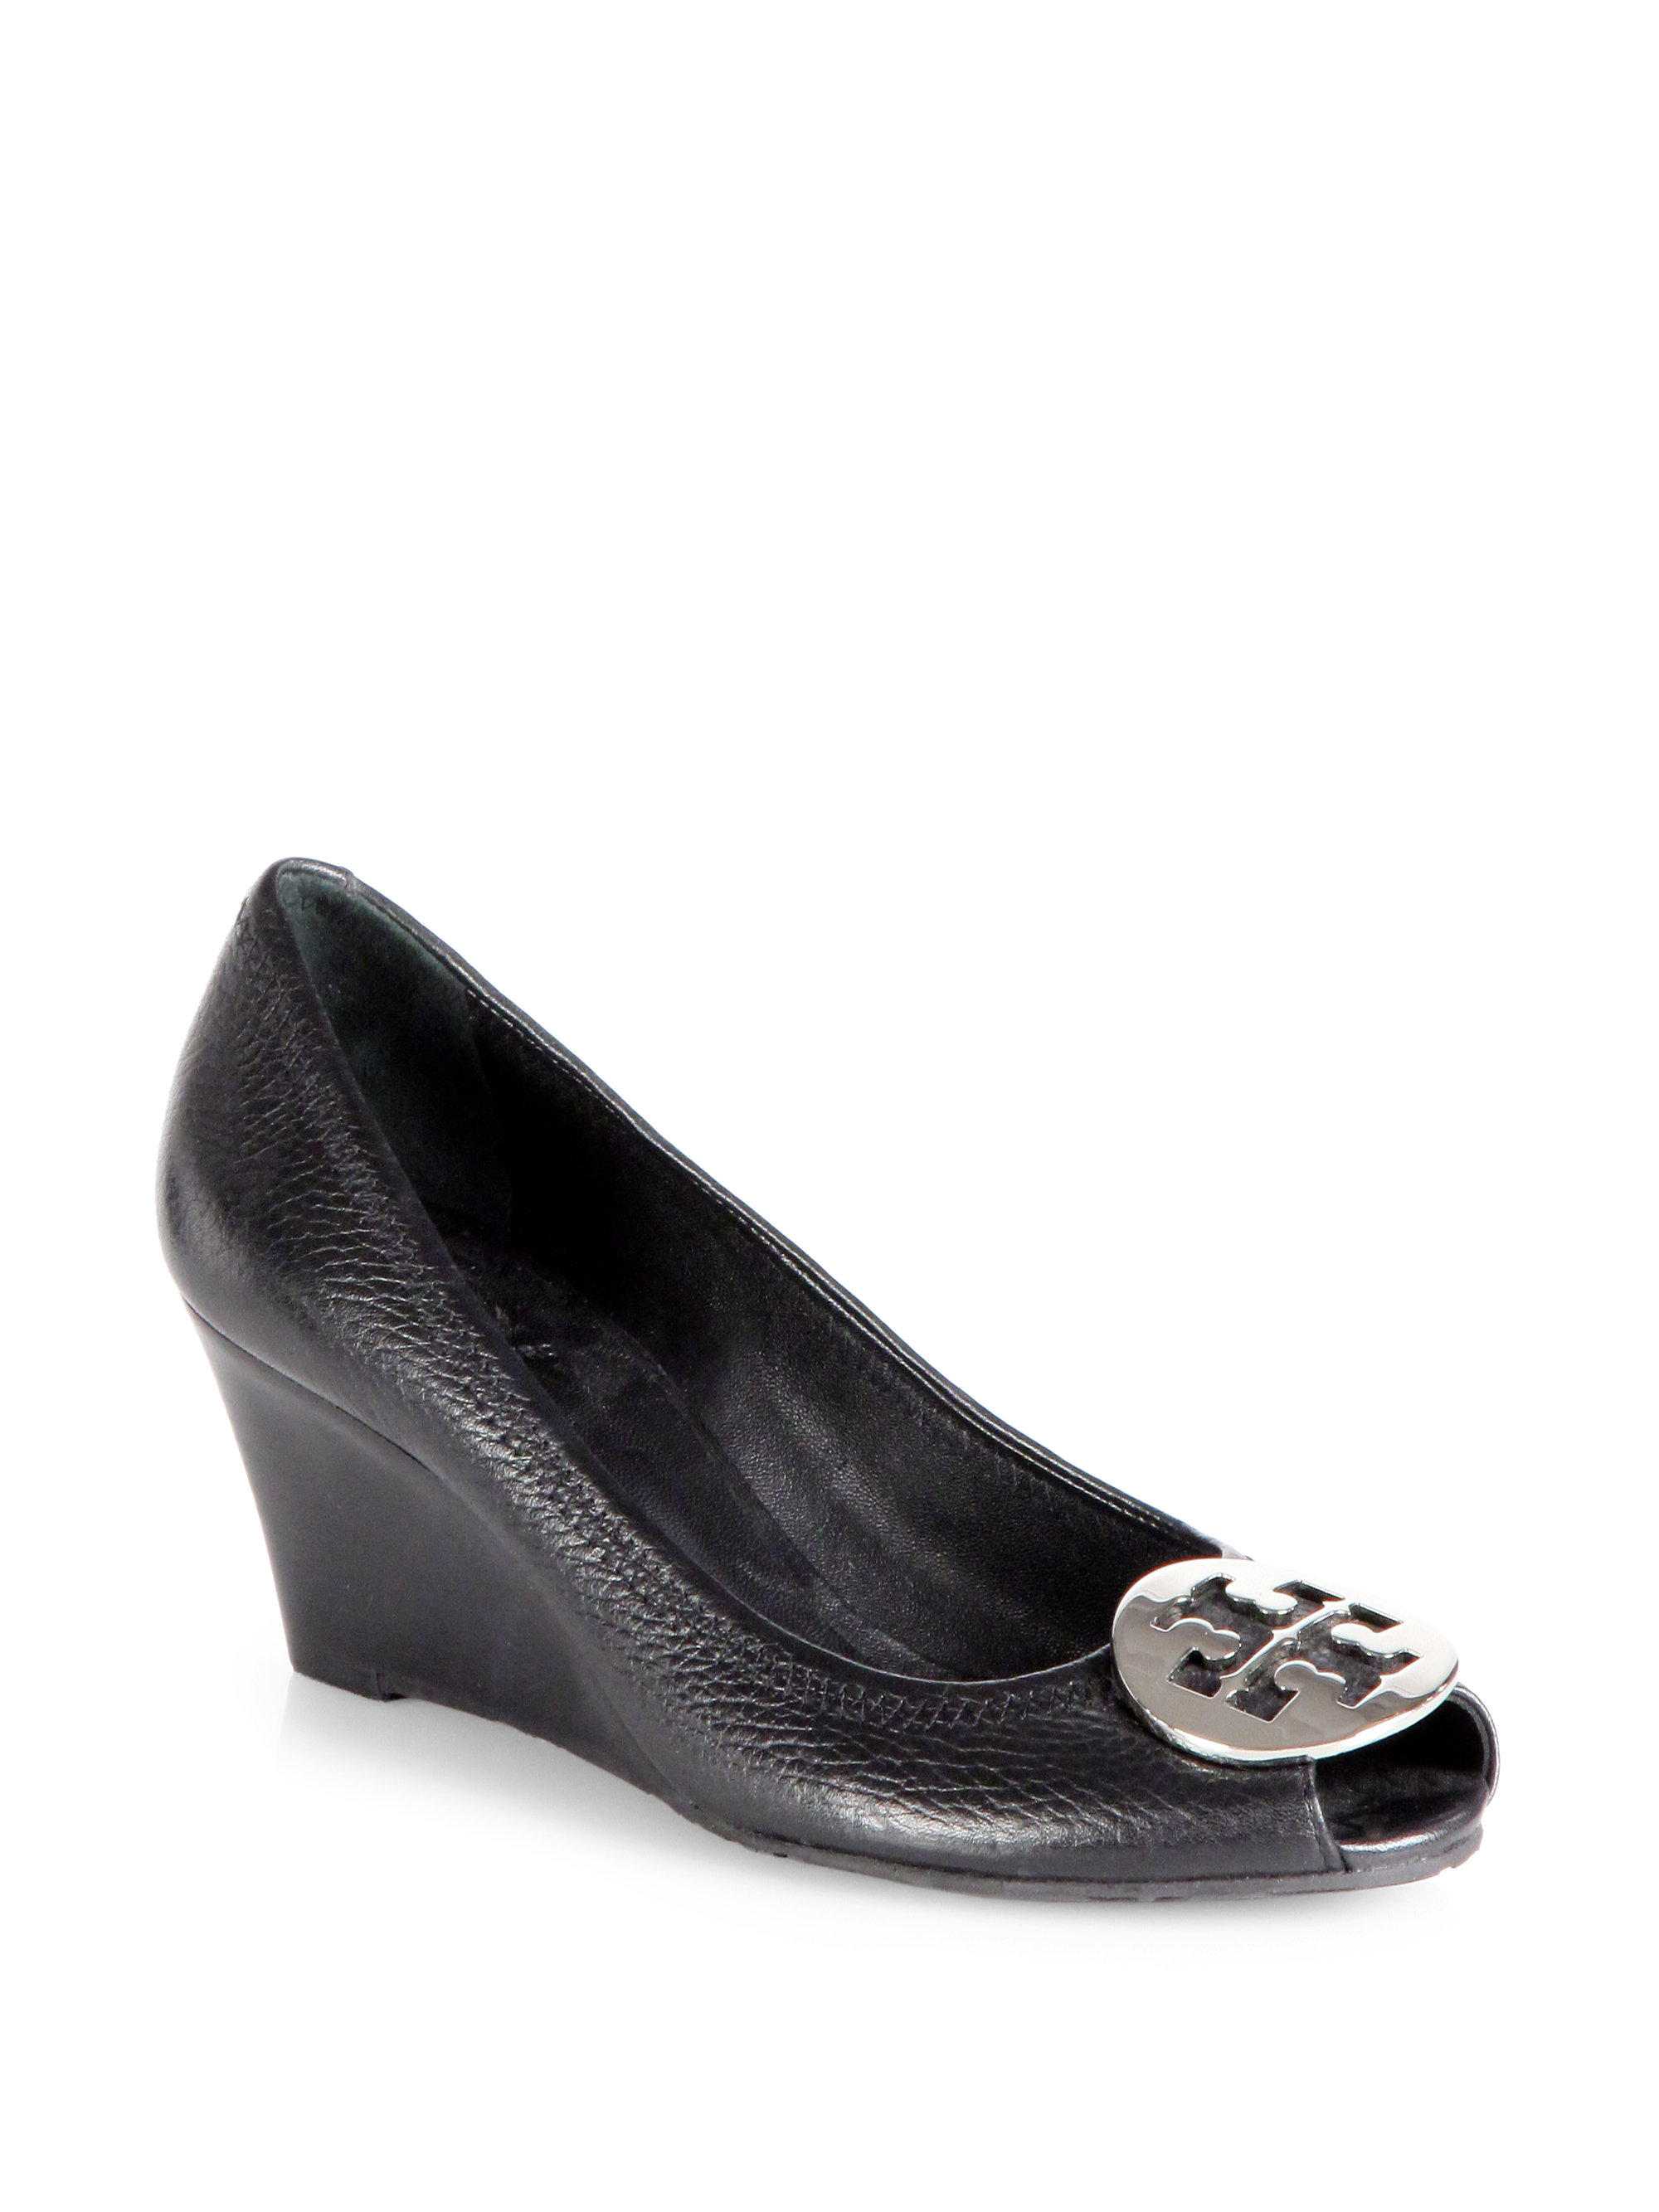 aae0ef8d3fb1 Lyst - Tory Burch Sally 2 Tumbled Leather Wedge Pumps in Black